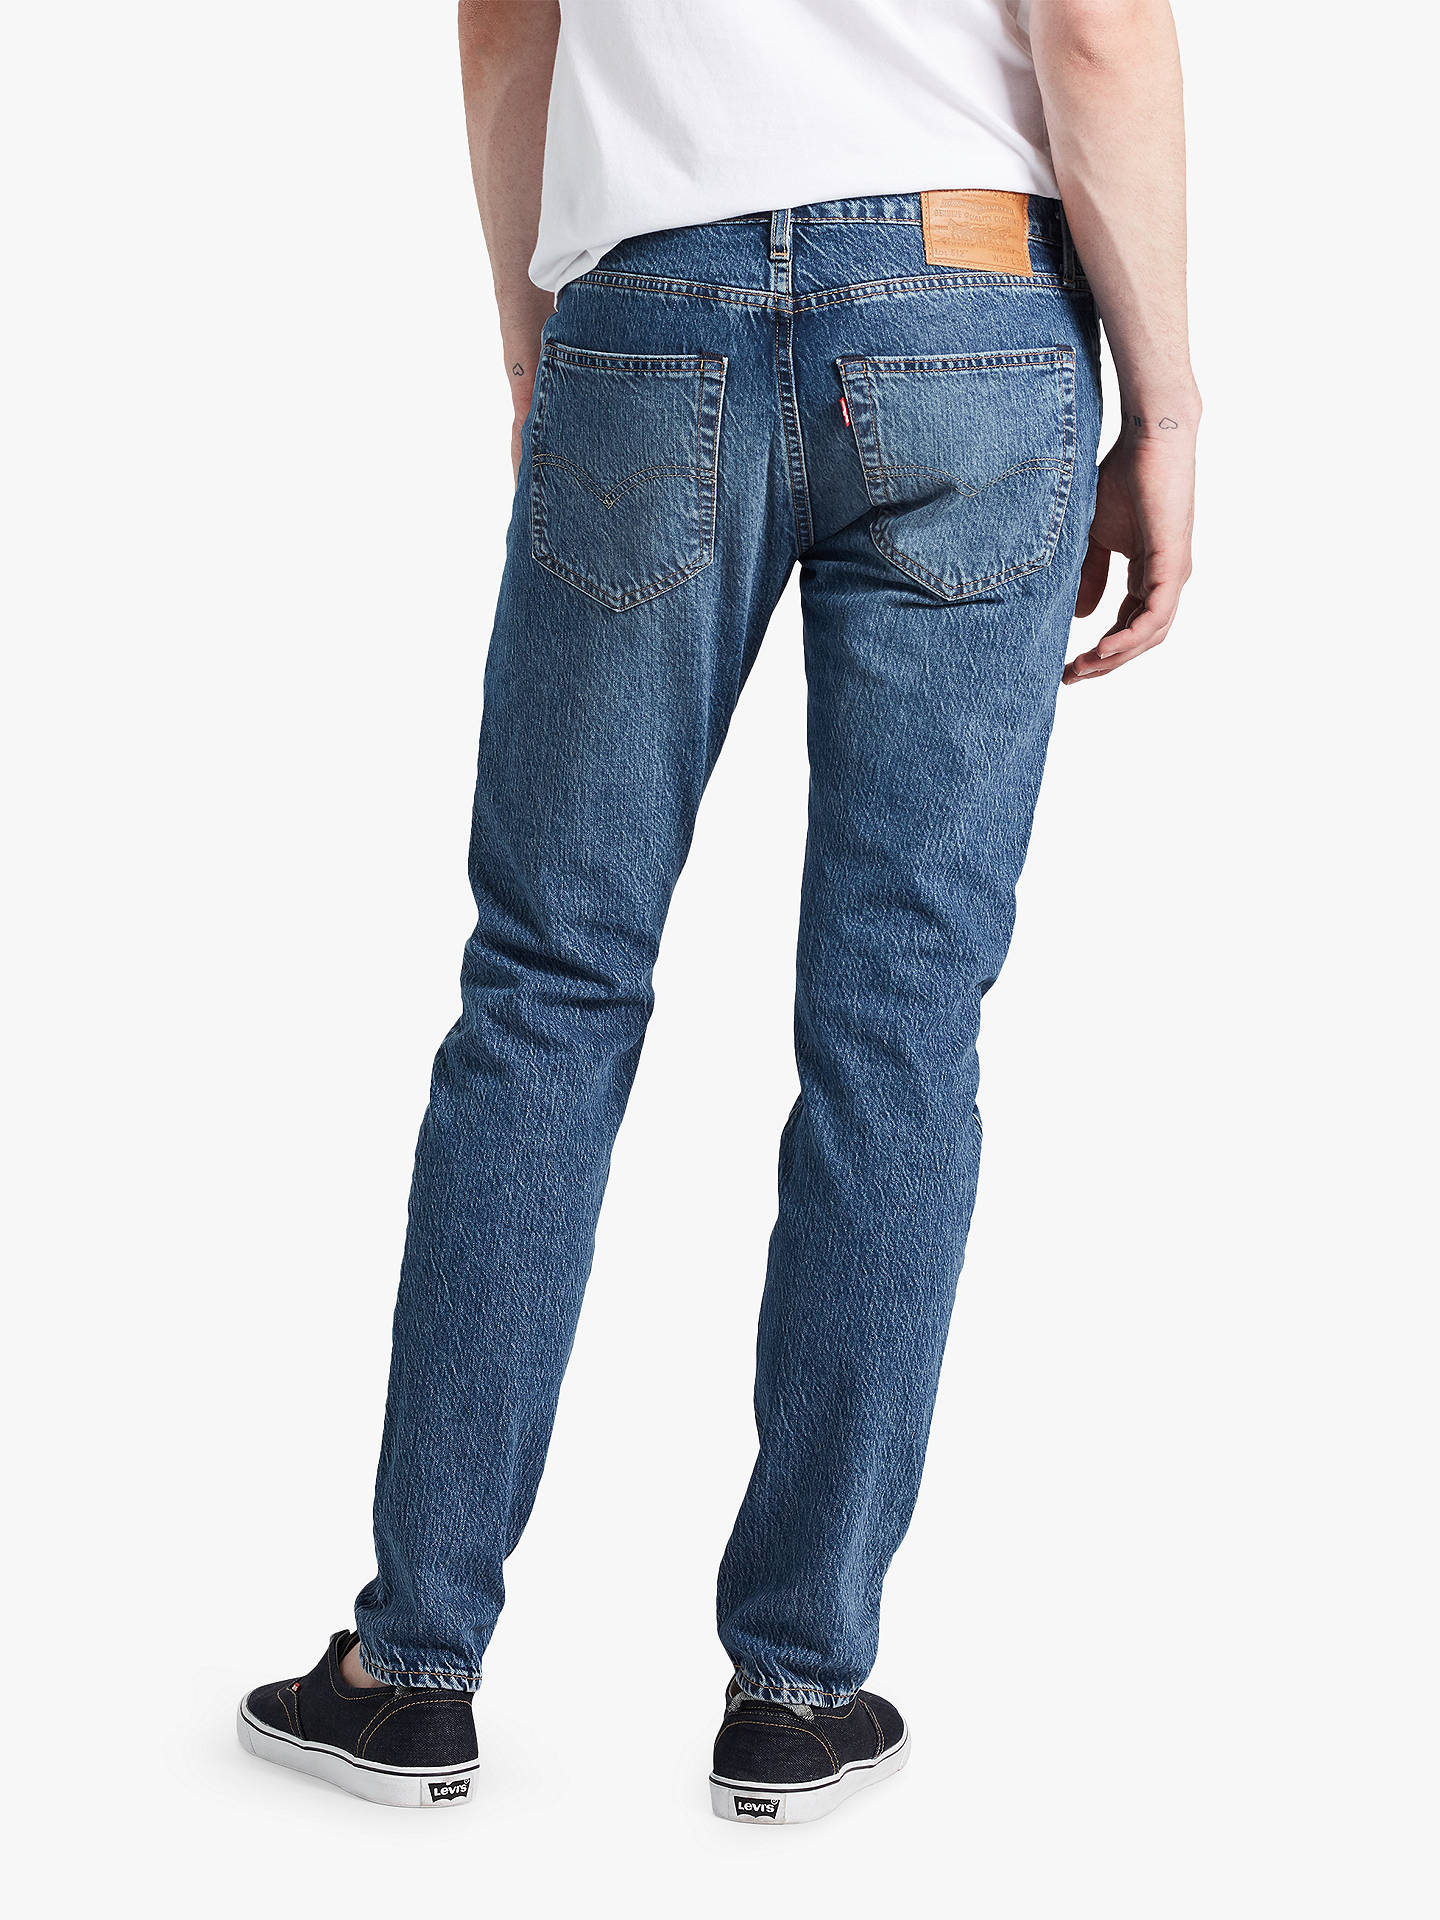 dc3dab6083b ... Buy Levi's 512 Slim Tapered Jeans, Marcel Dark, 32R Online at  johnlewis.com